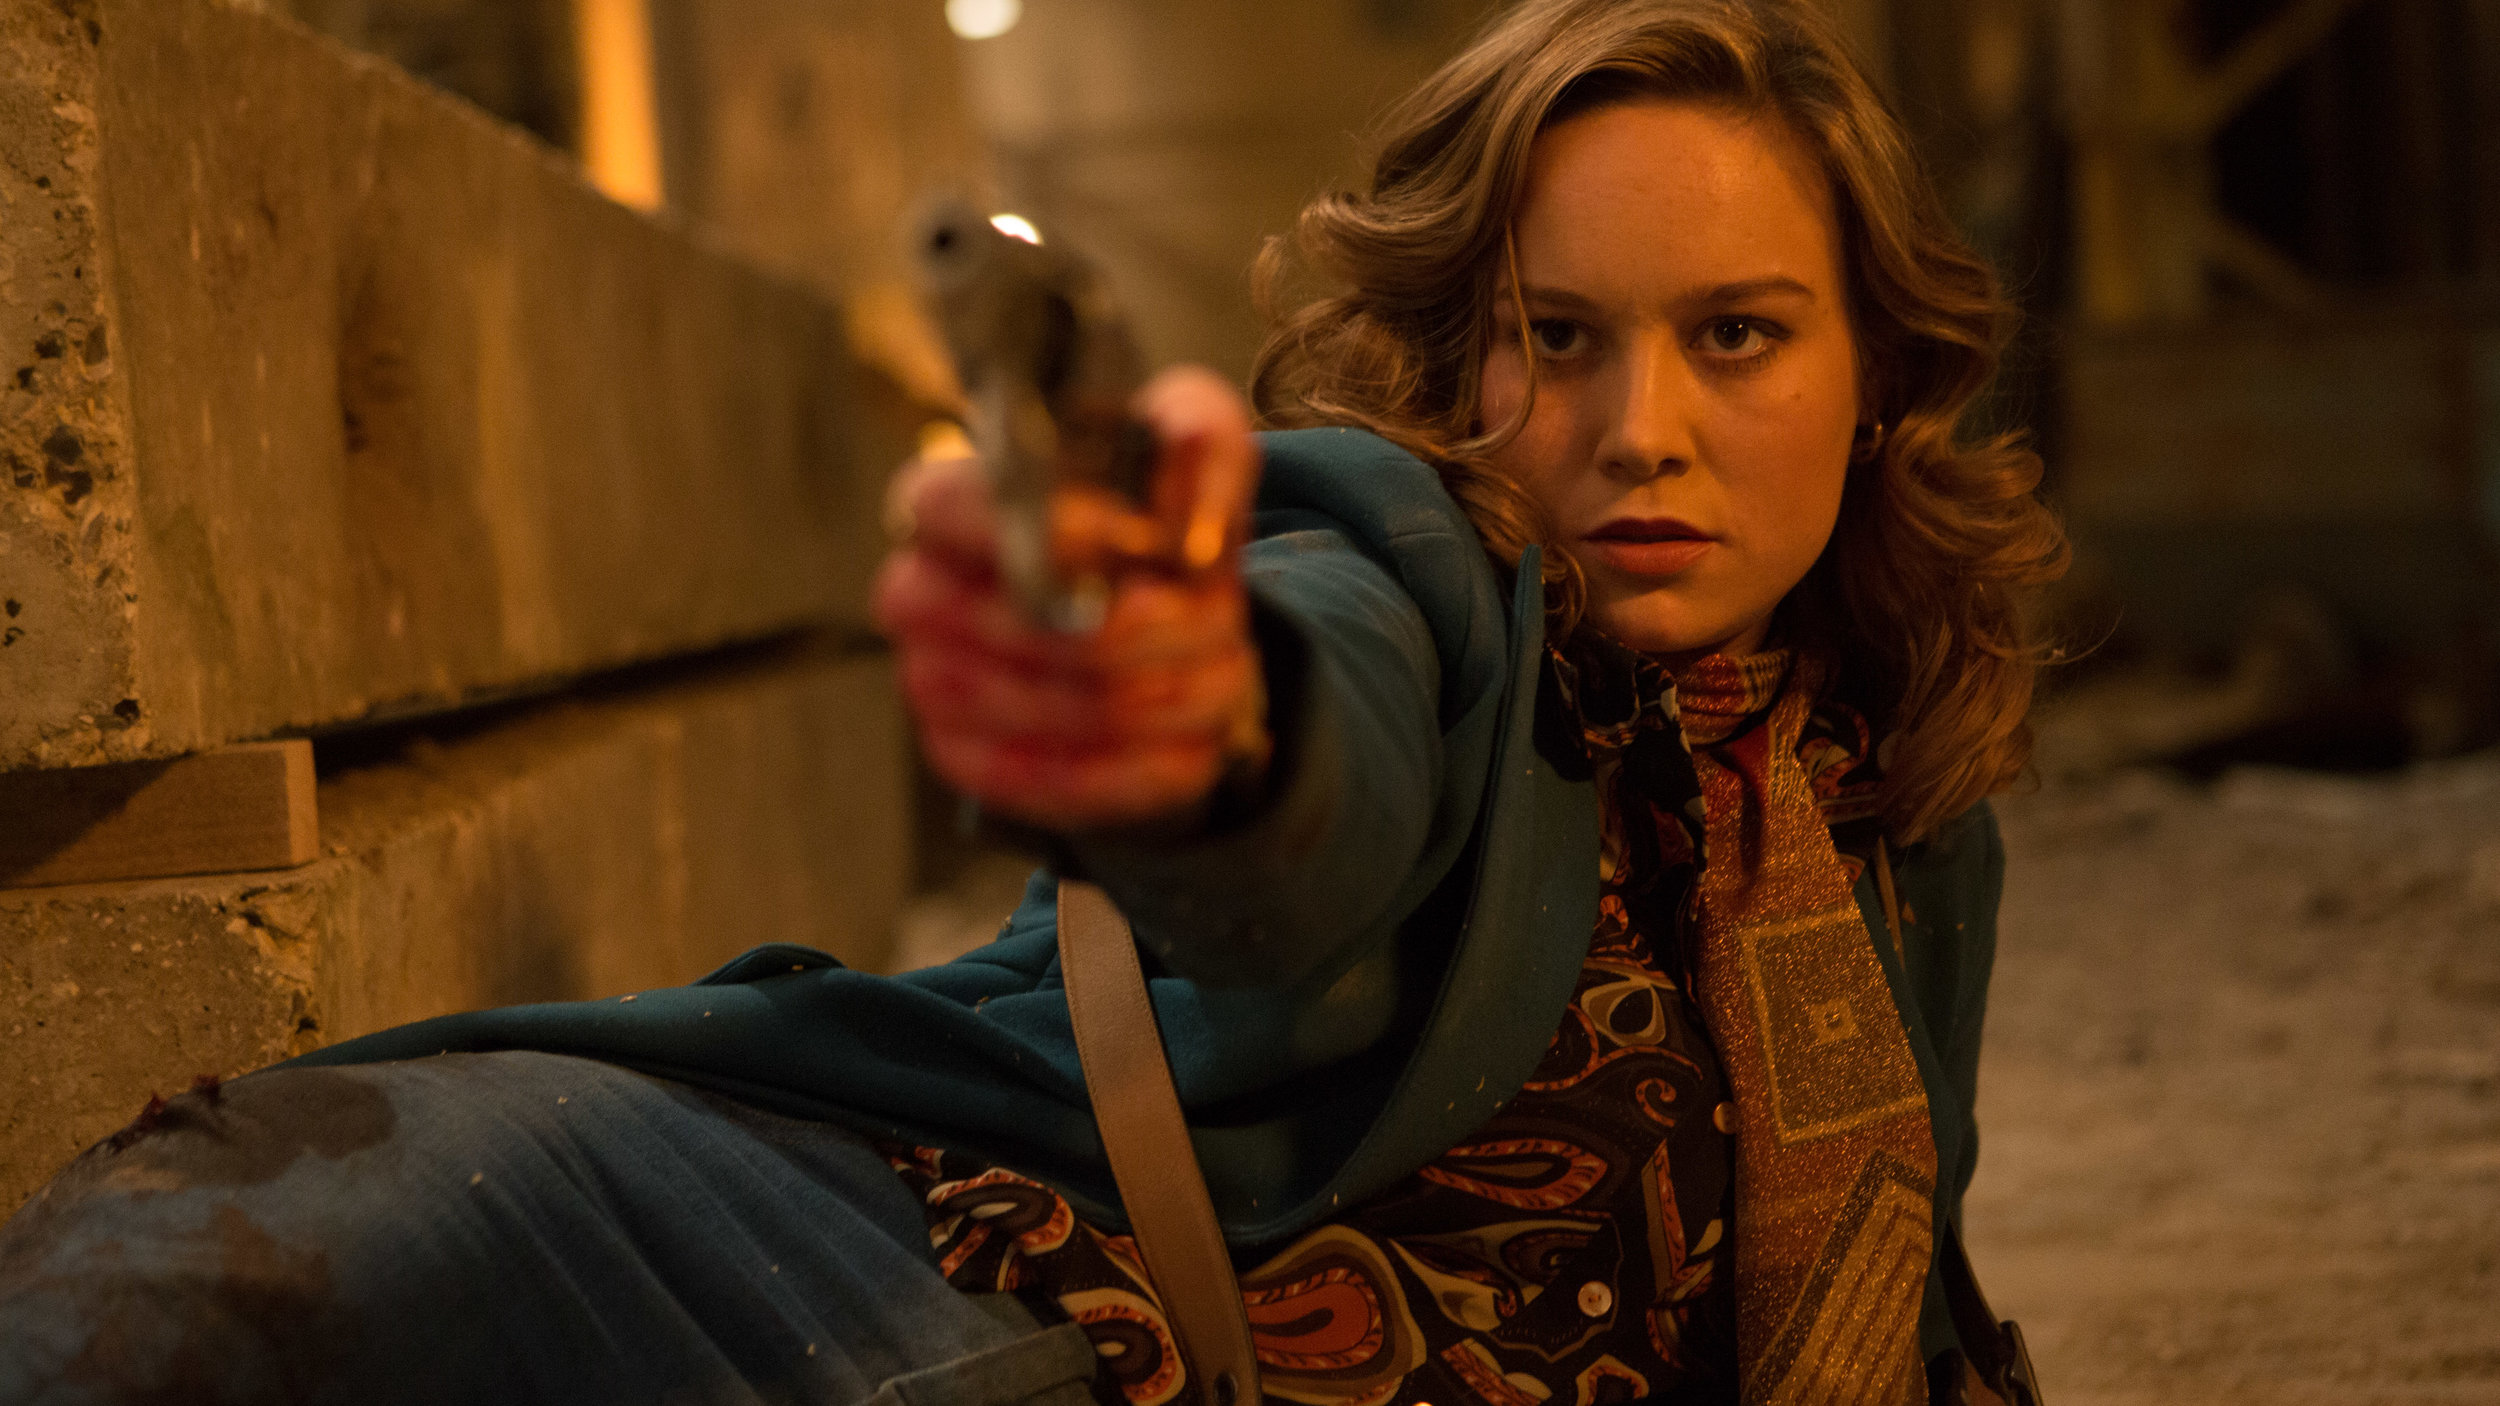 Brie Larson protects her personal space. (A24)